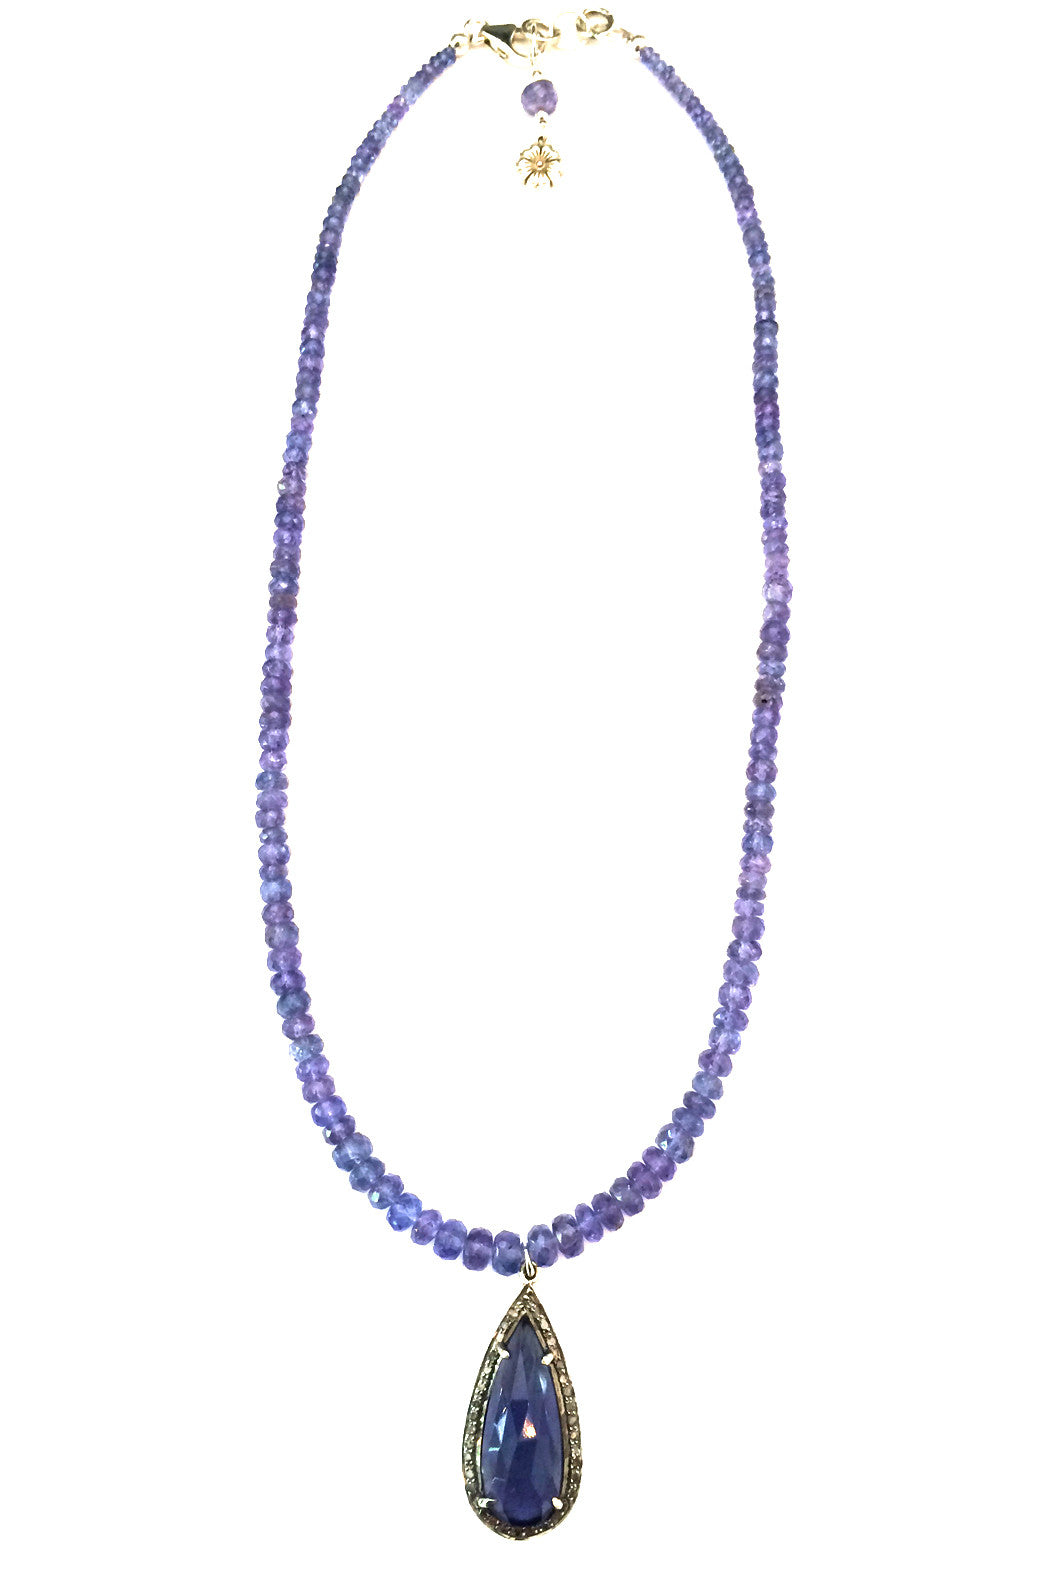 monroe bluebell lolite alex pendant kew necklace iolite gardens shop